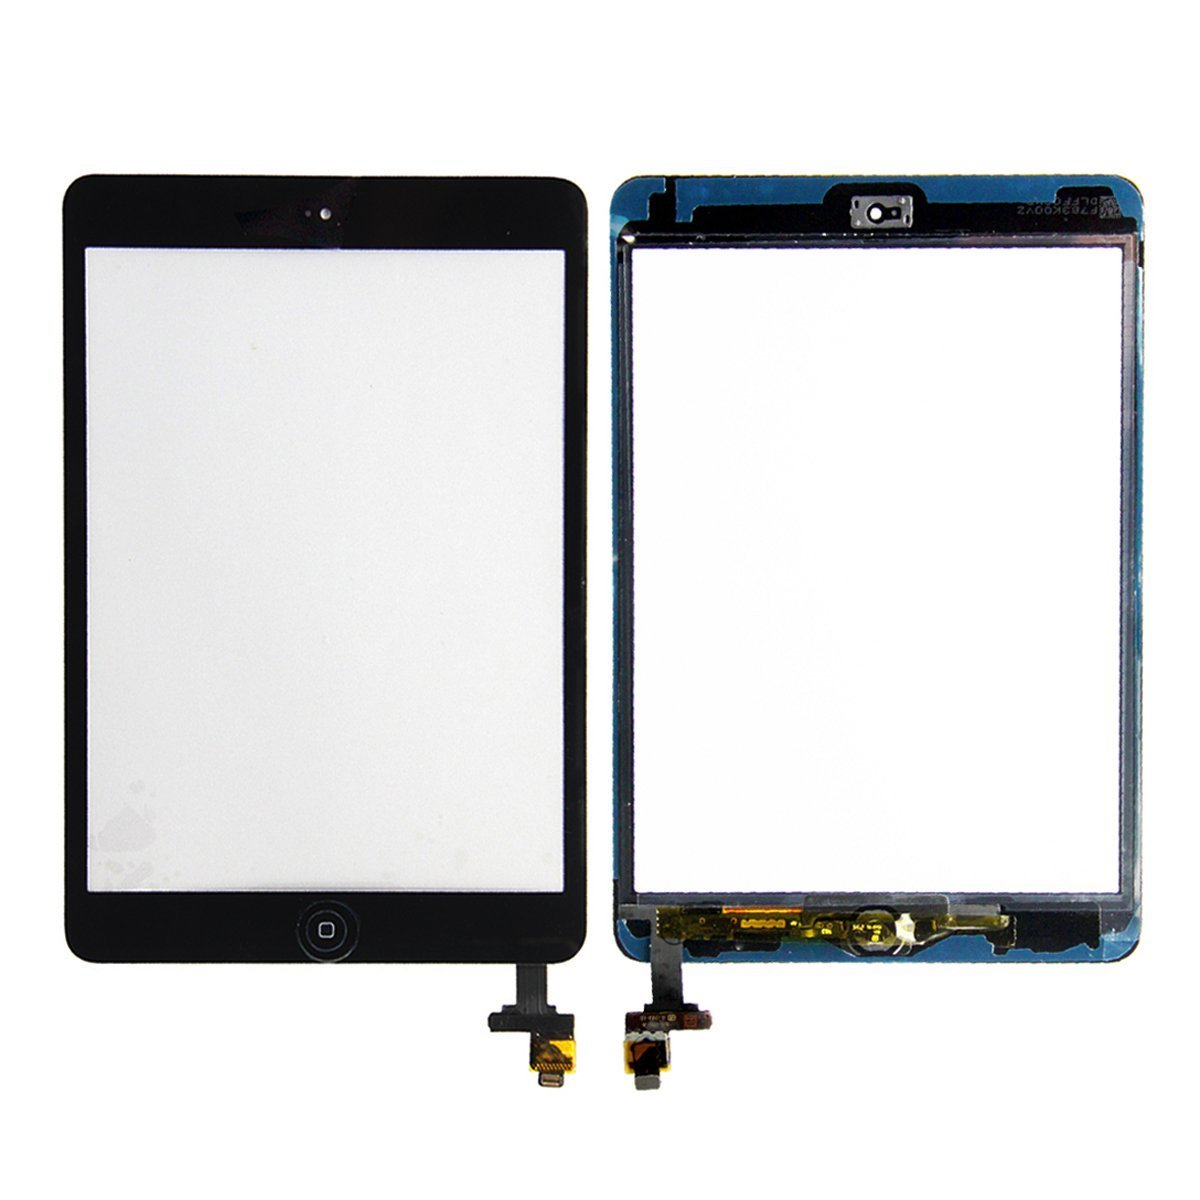 Apple iPad Mini Black Touch Screen Glass Digitizer A1432 A1454 A1455 with IC Connector